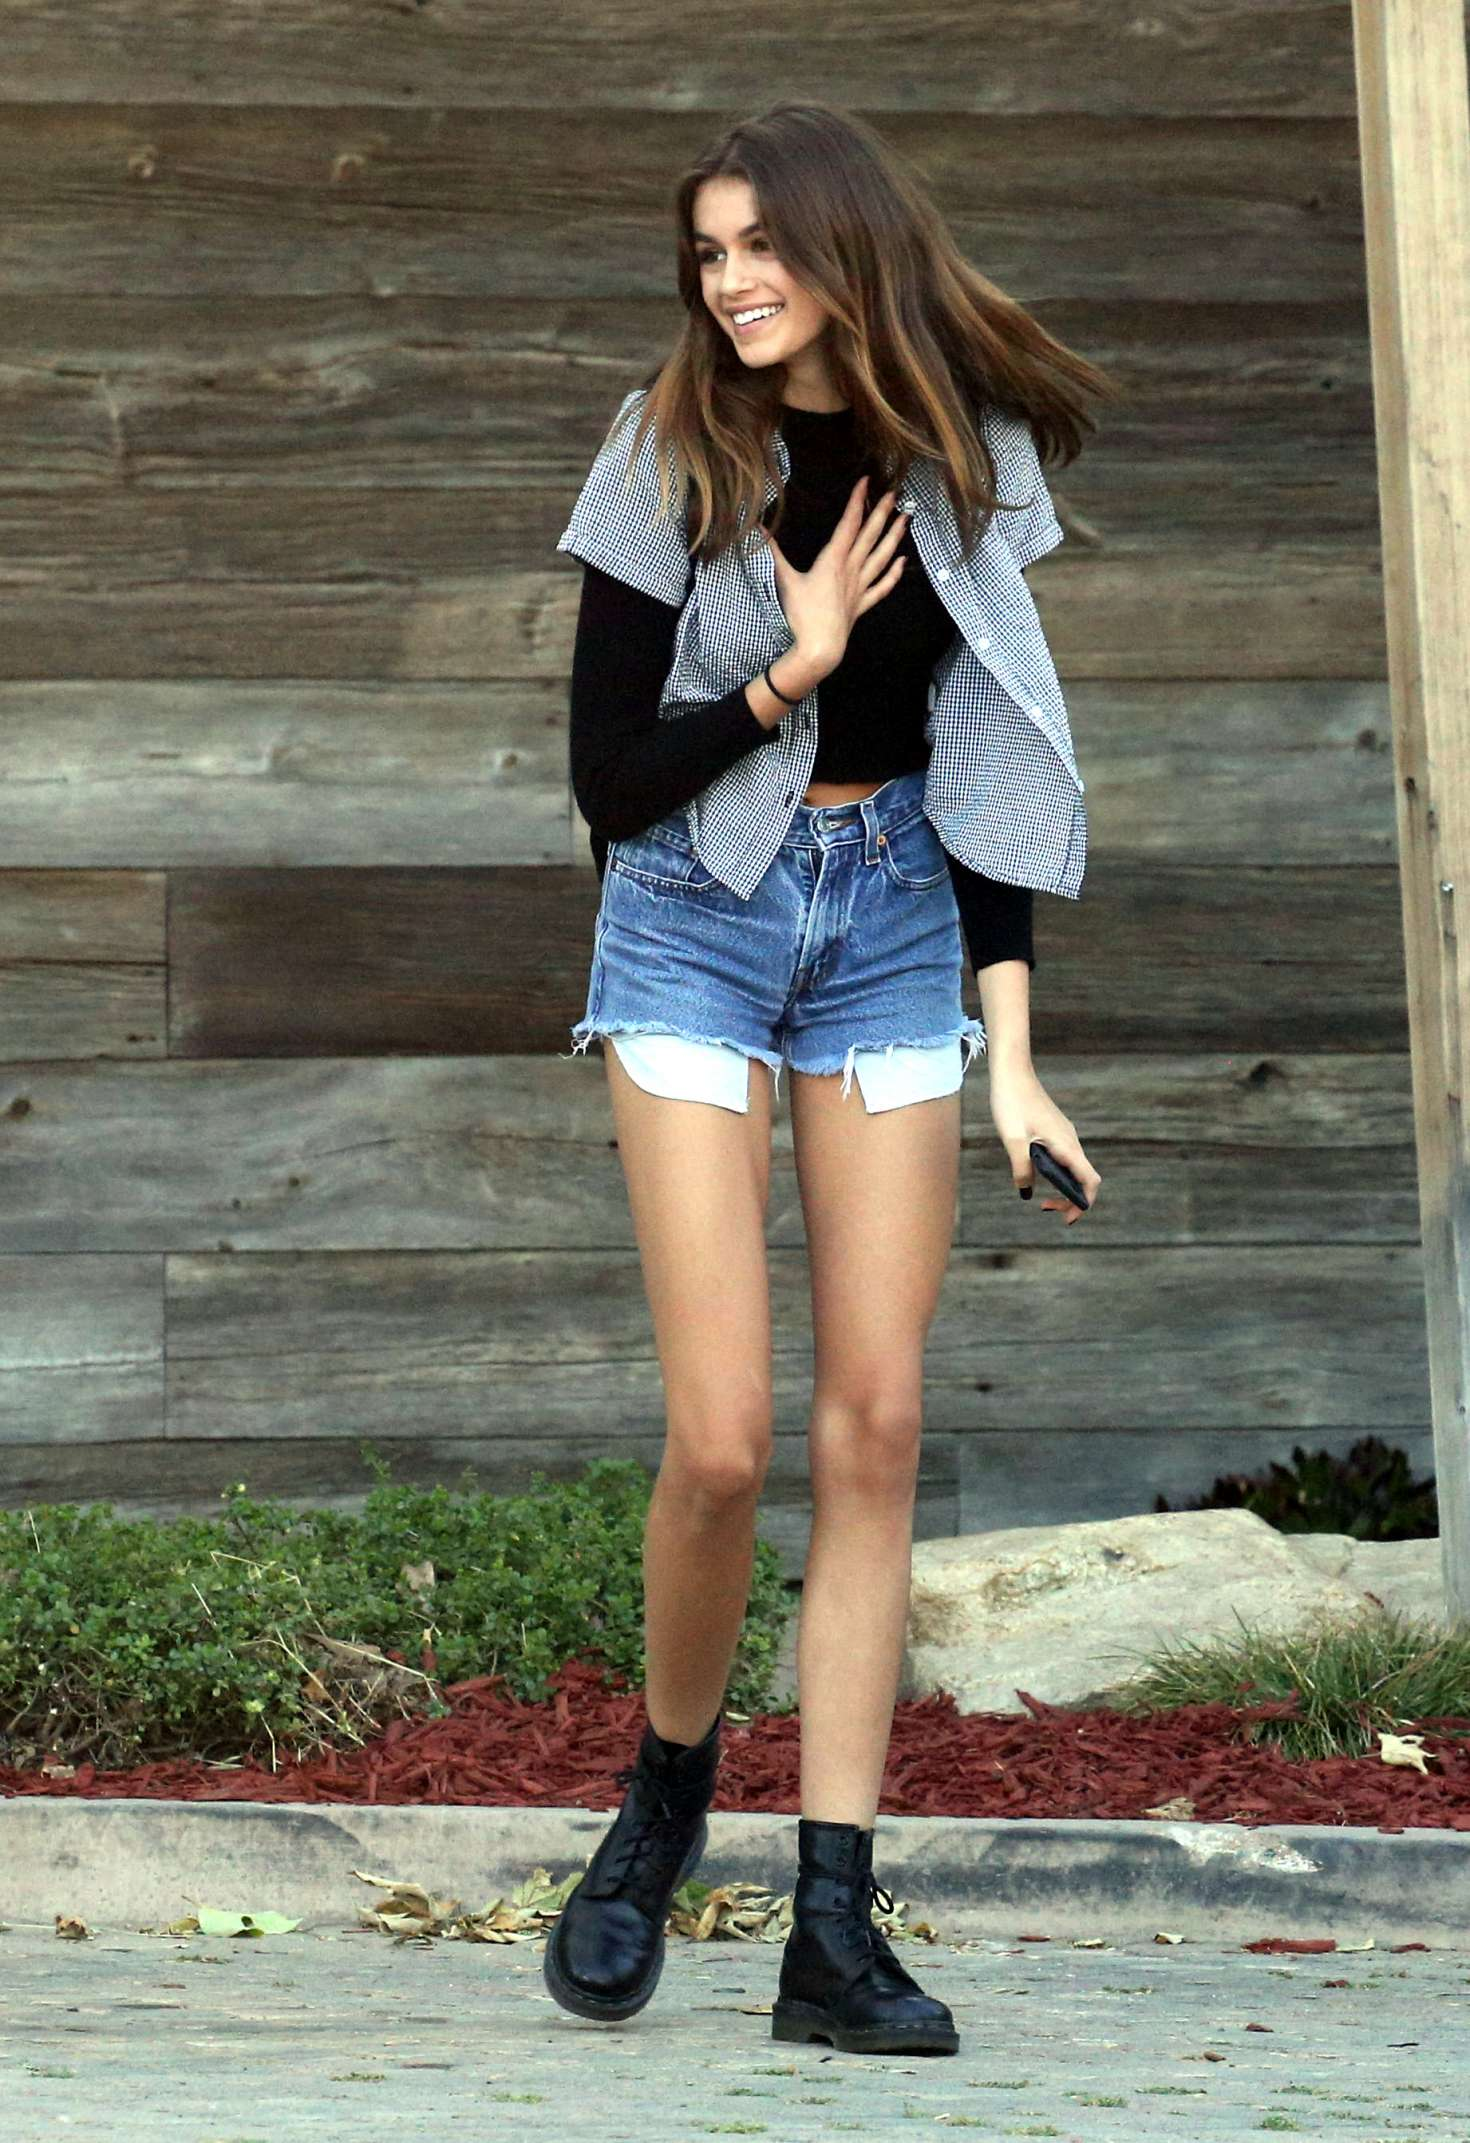 Cute Wallpapers For The Name Jasmine Kaia Gerber In Cut Offs 18 Gotceleb